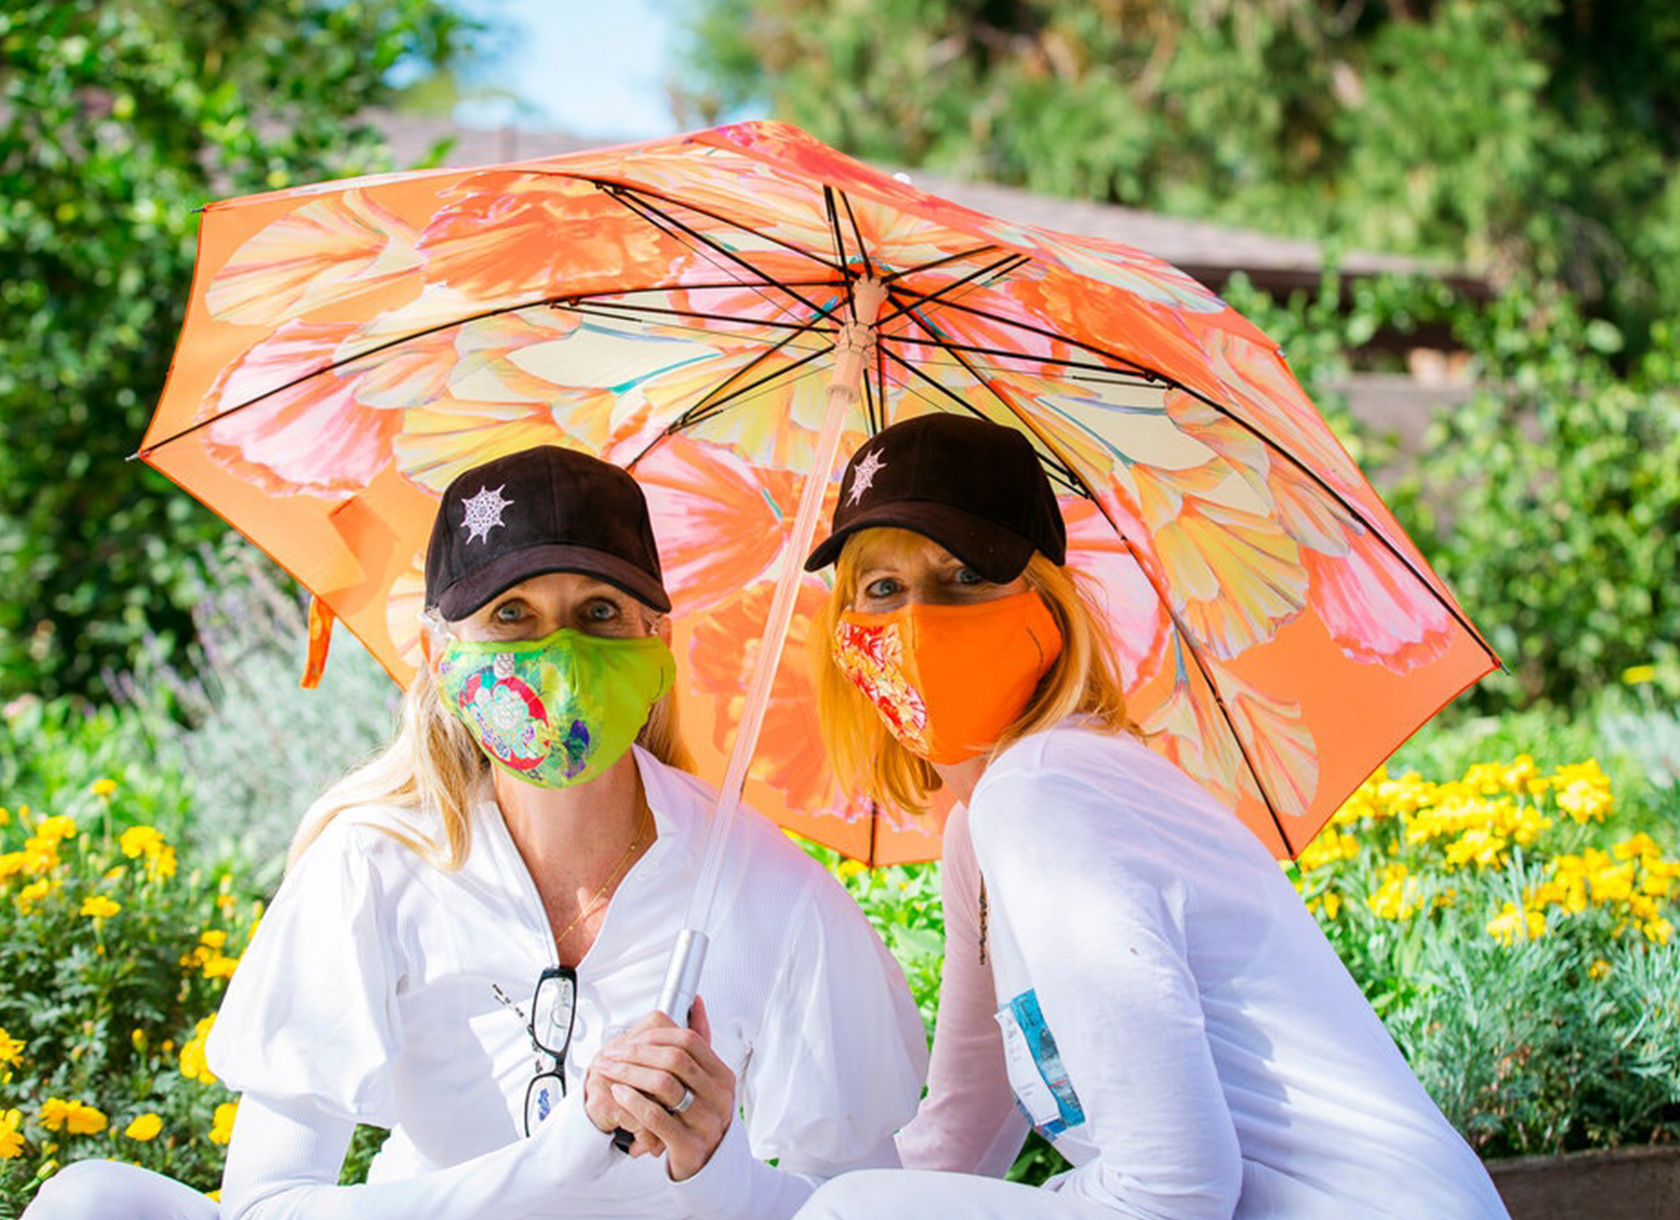 Two White women dressed in white wear masks and hold an orange umbrella